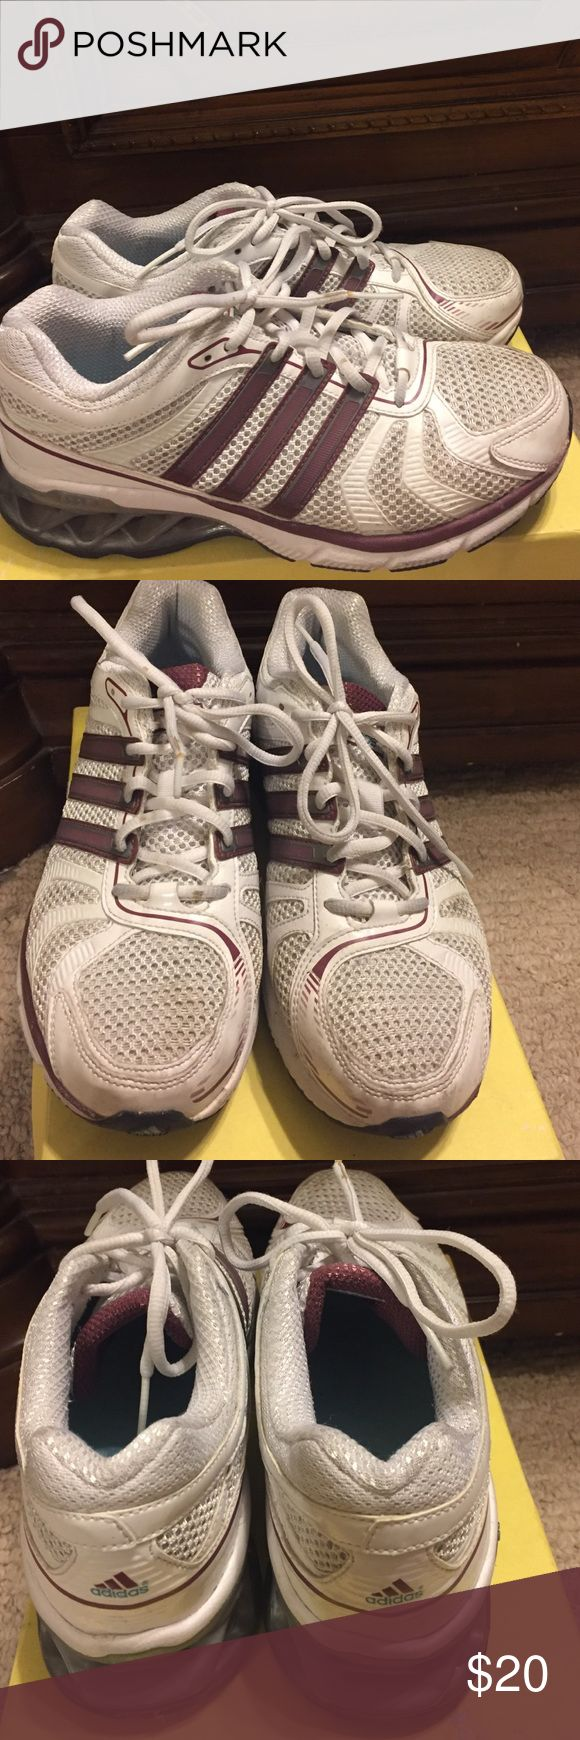 Adidas Boost shoes Adidas Boost Running Shoes. Maroon and White size 7. Excellent condition. Used for fashion still has life for runners and exercise. Adidas Shoes Athletic Shoes